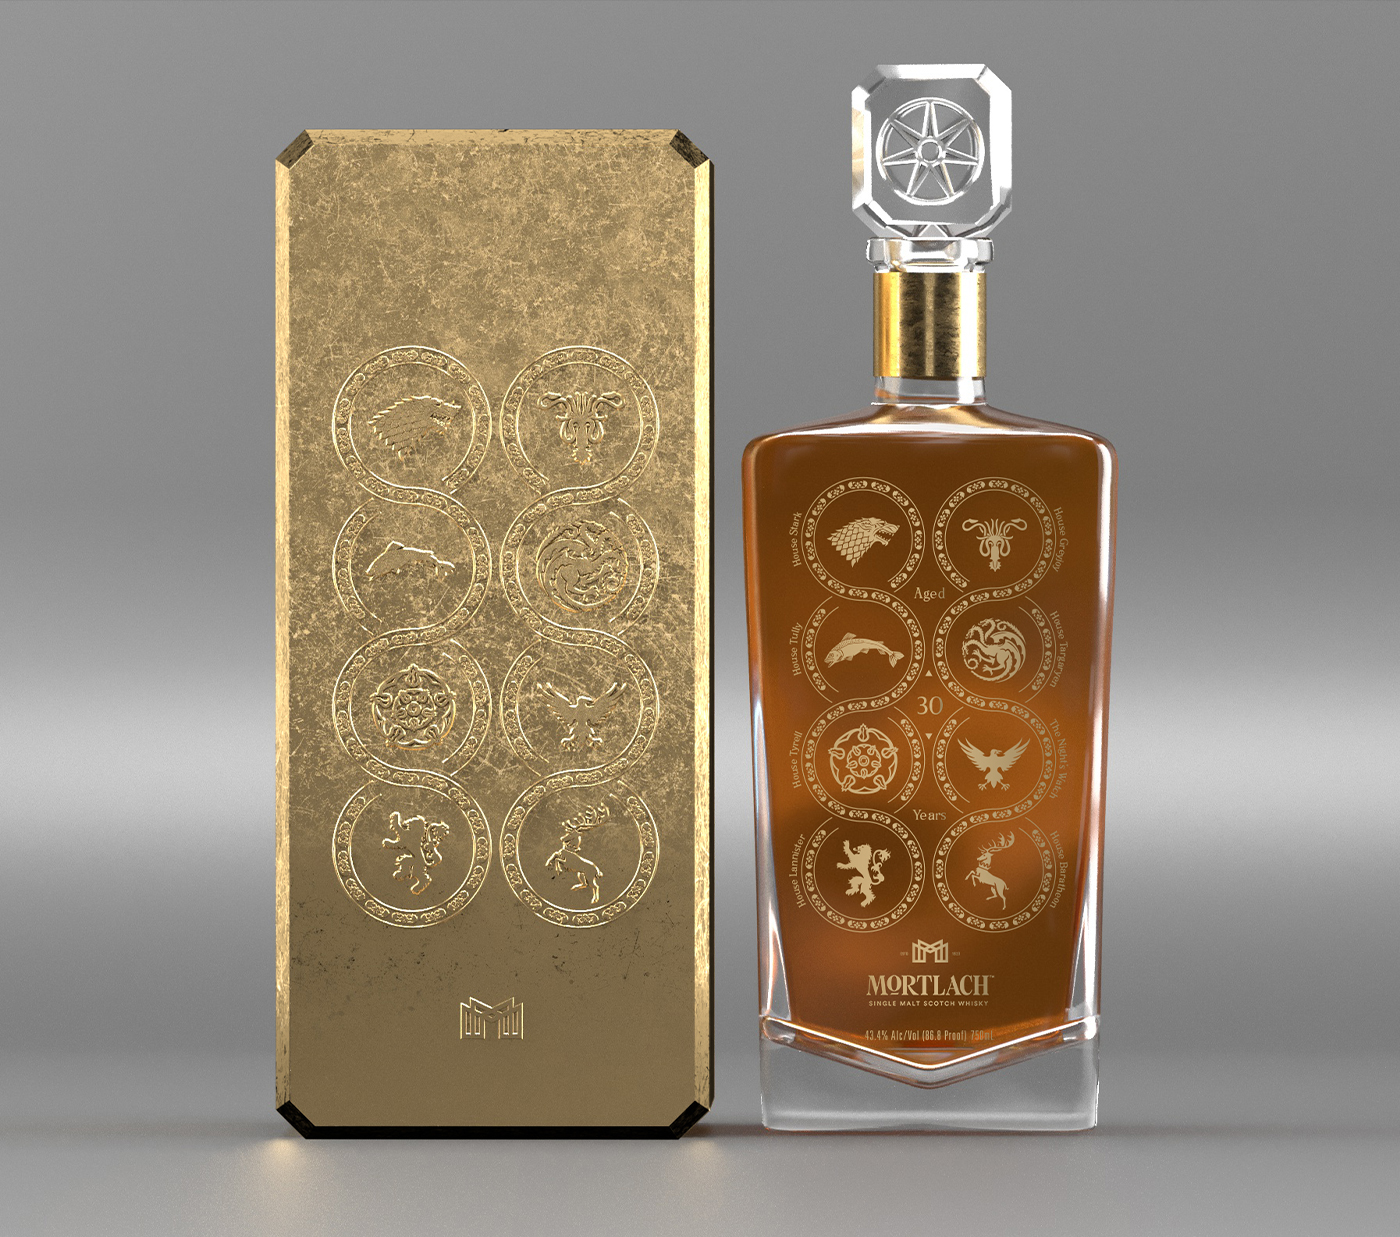 Game of Thrones Mortlach